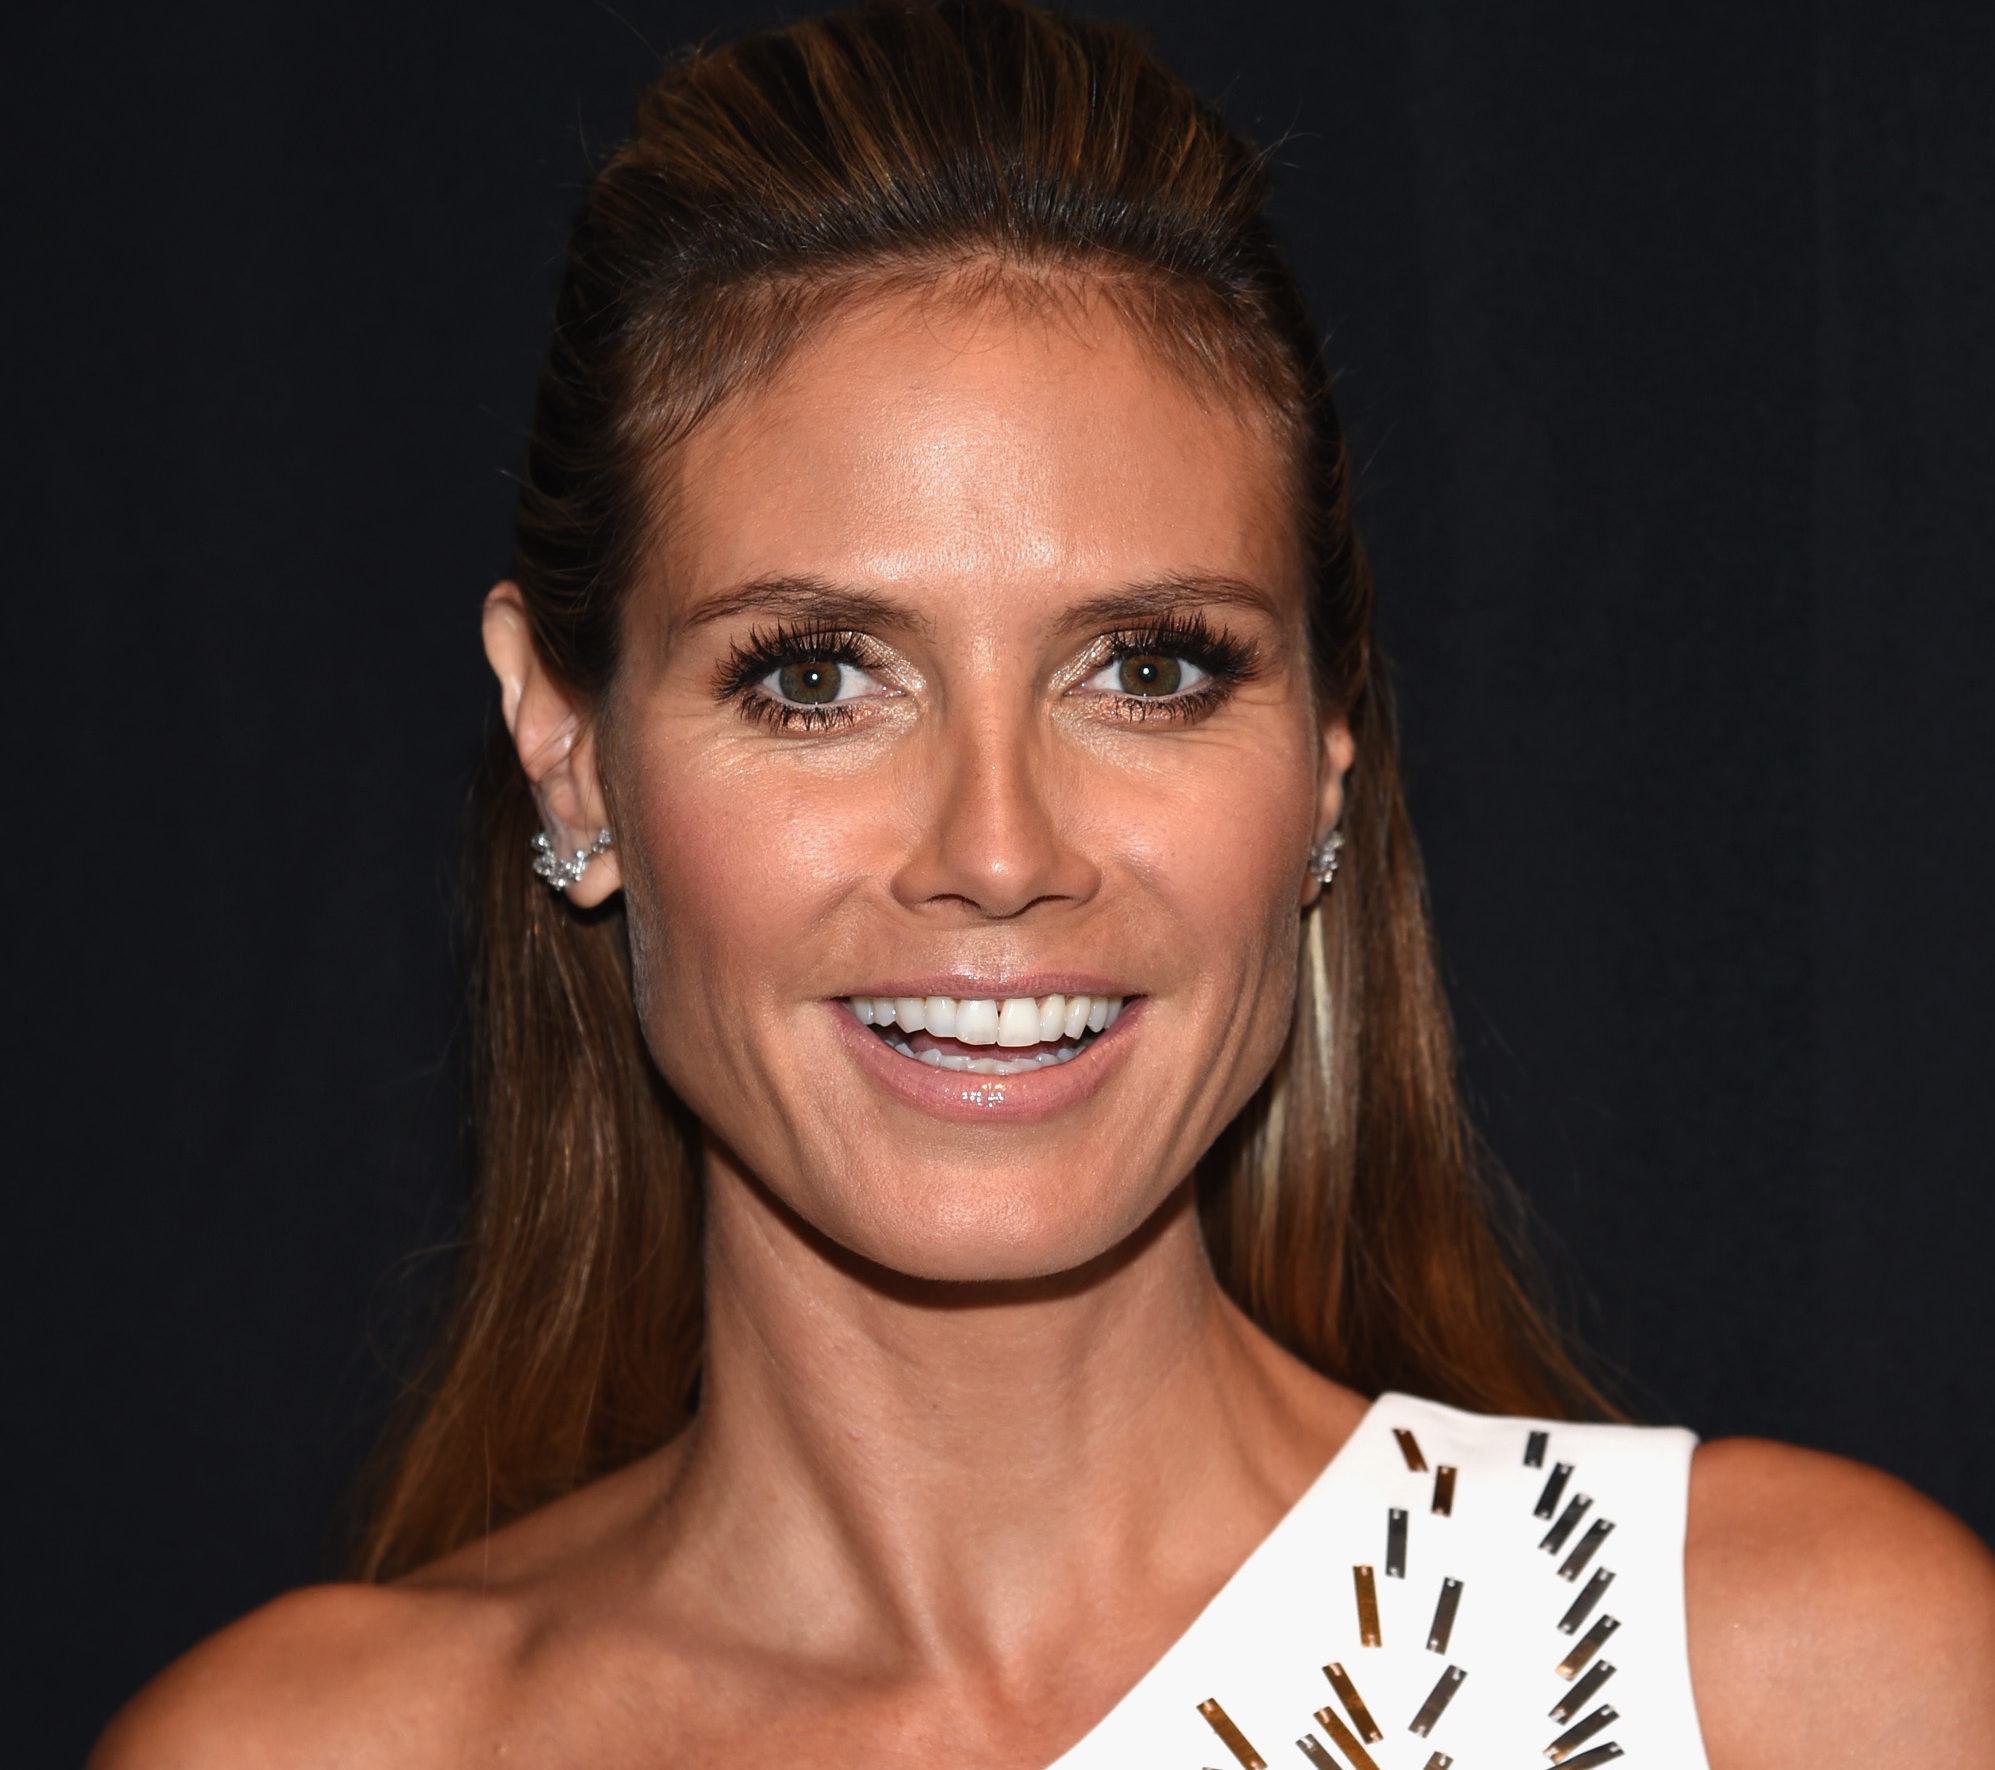 Heidi Klum looks like a warrior goddess in this metallic Emmy dress